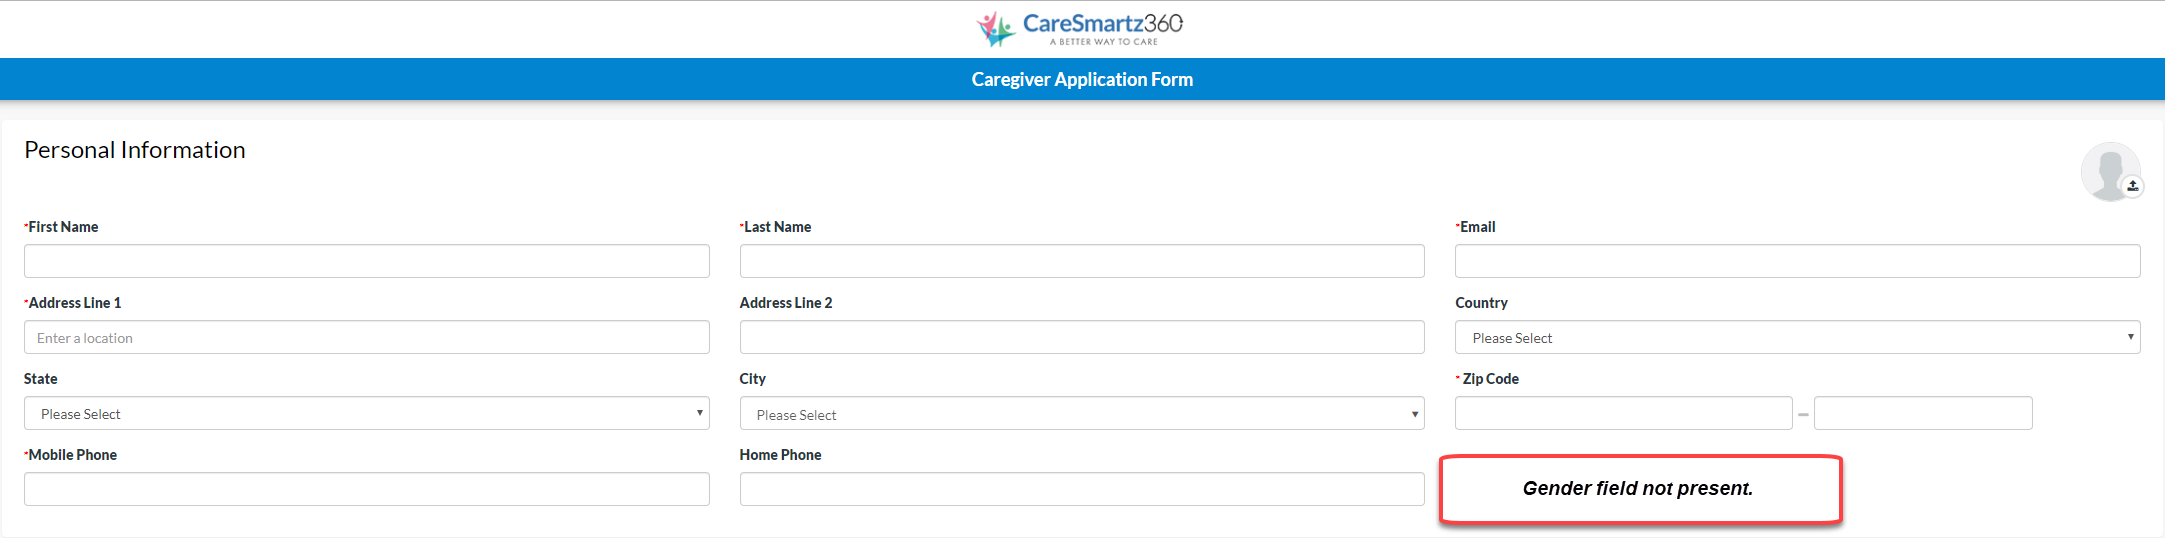 caregiver-applicant-form-setting